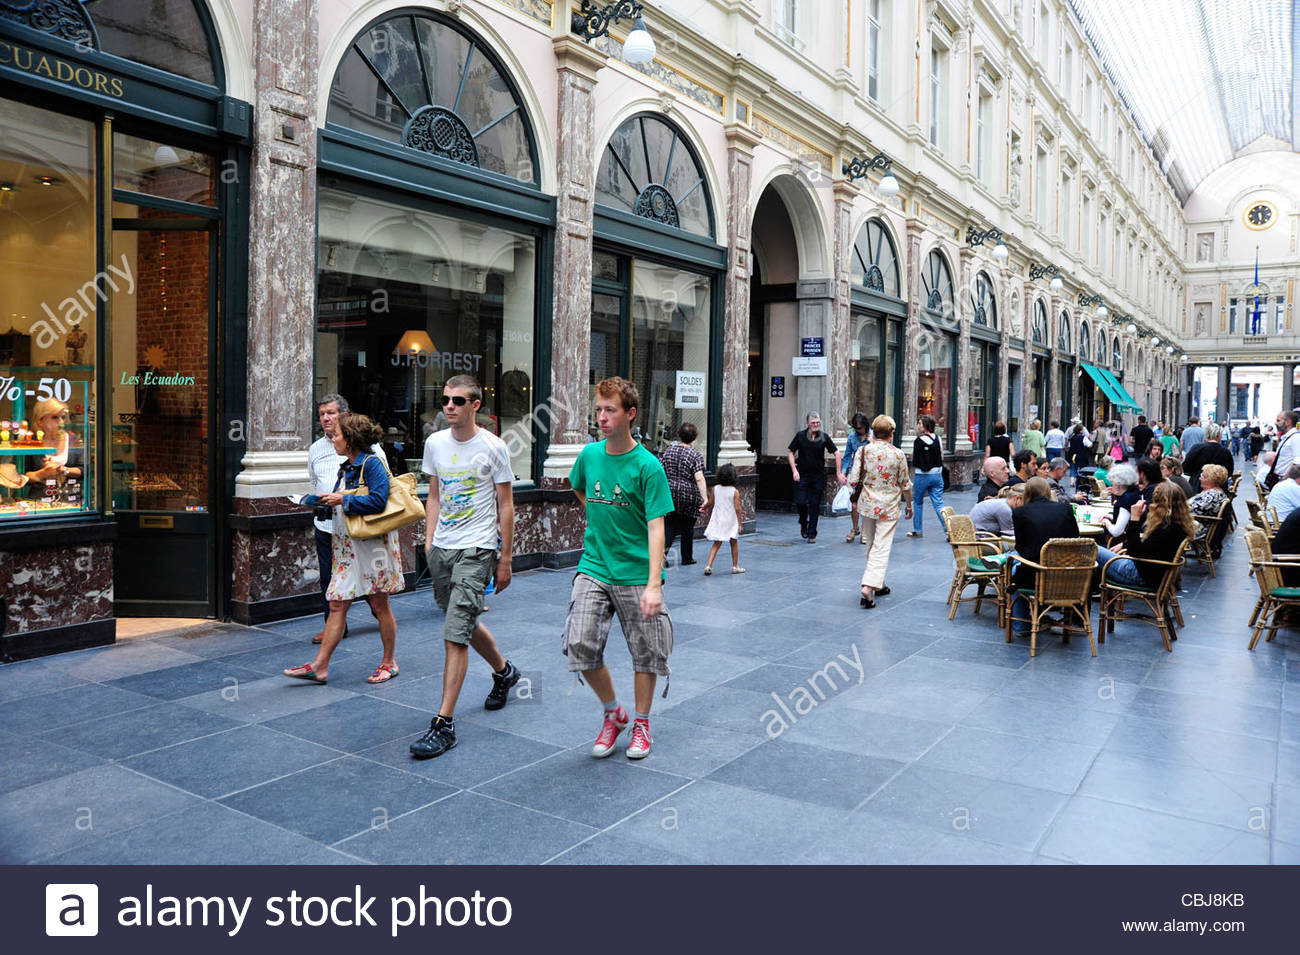 People inside shopping arcade at the city centre, Brussels, Belgium, Europe - Stock Image